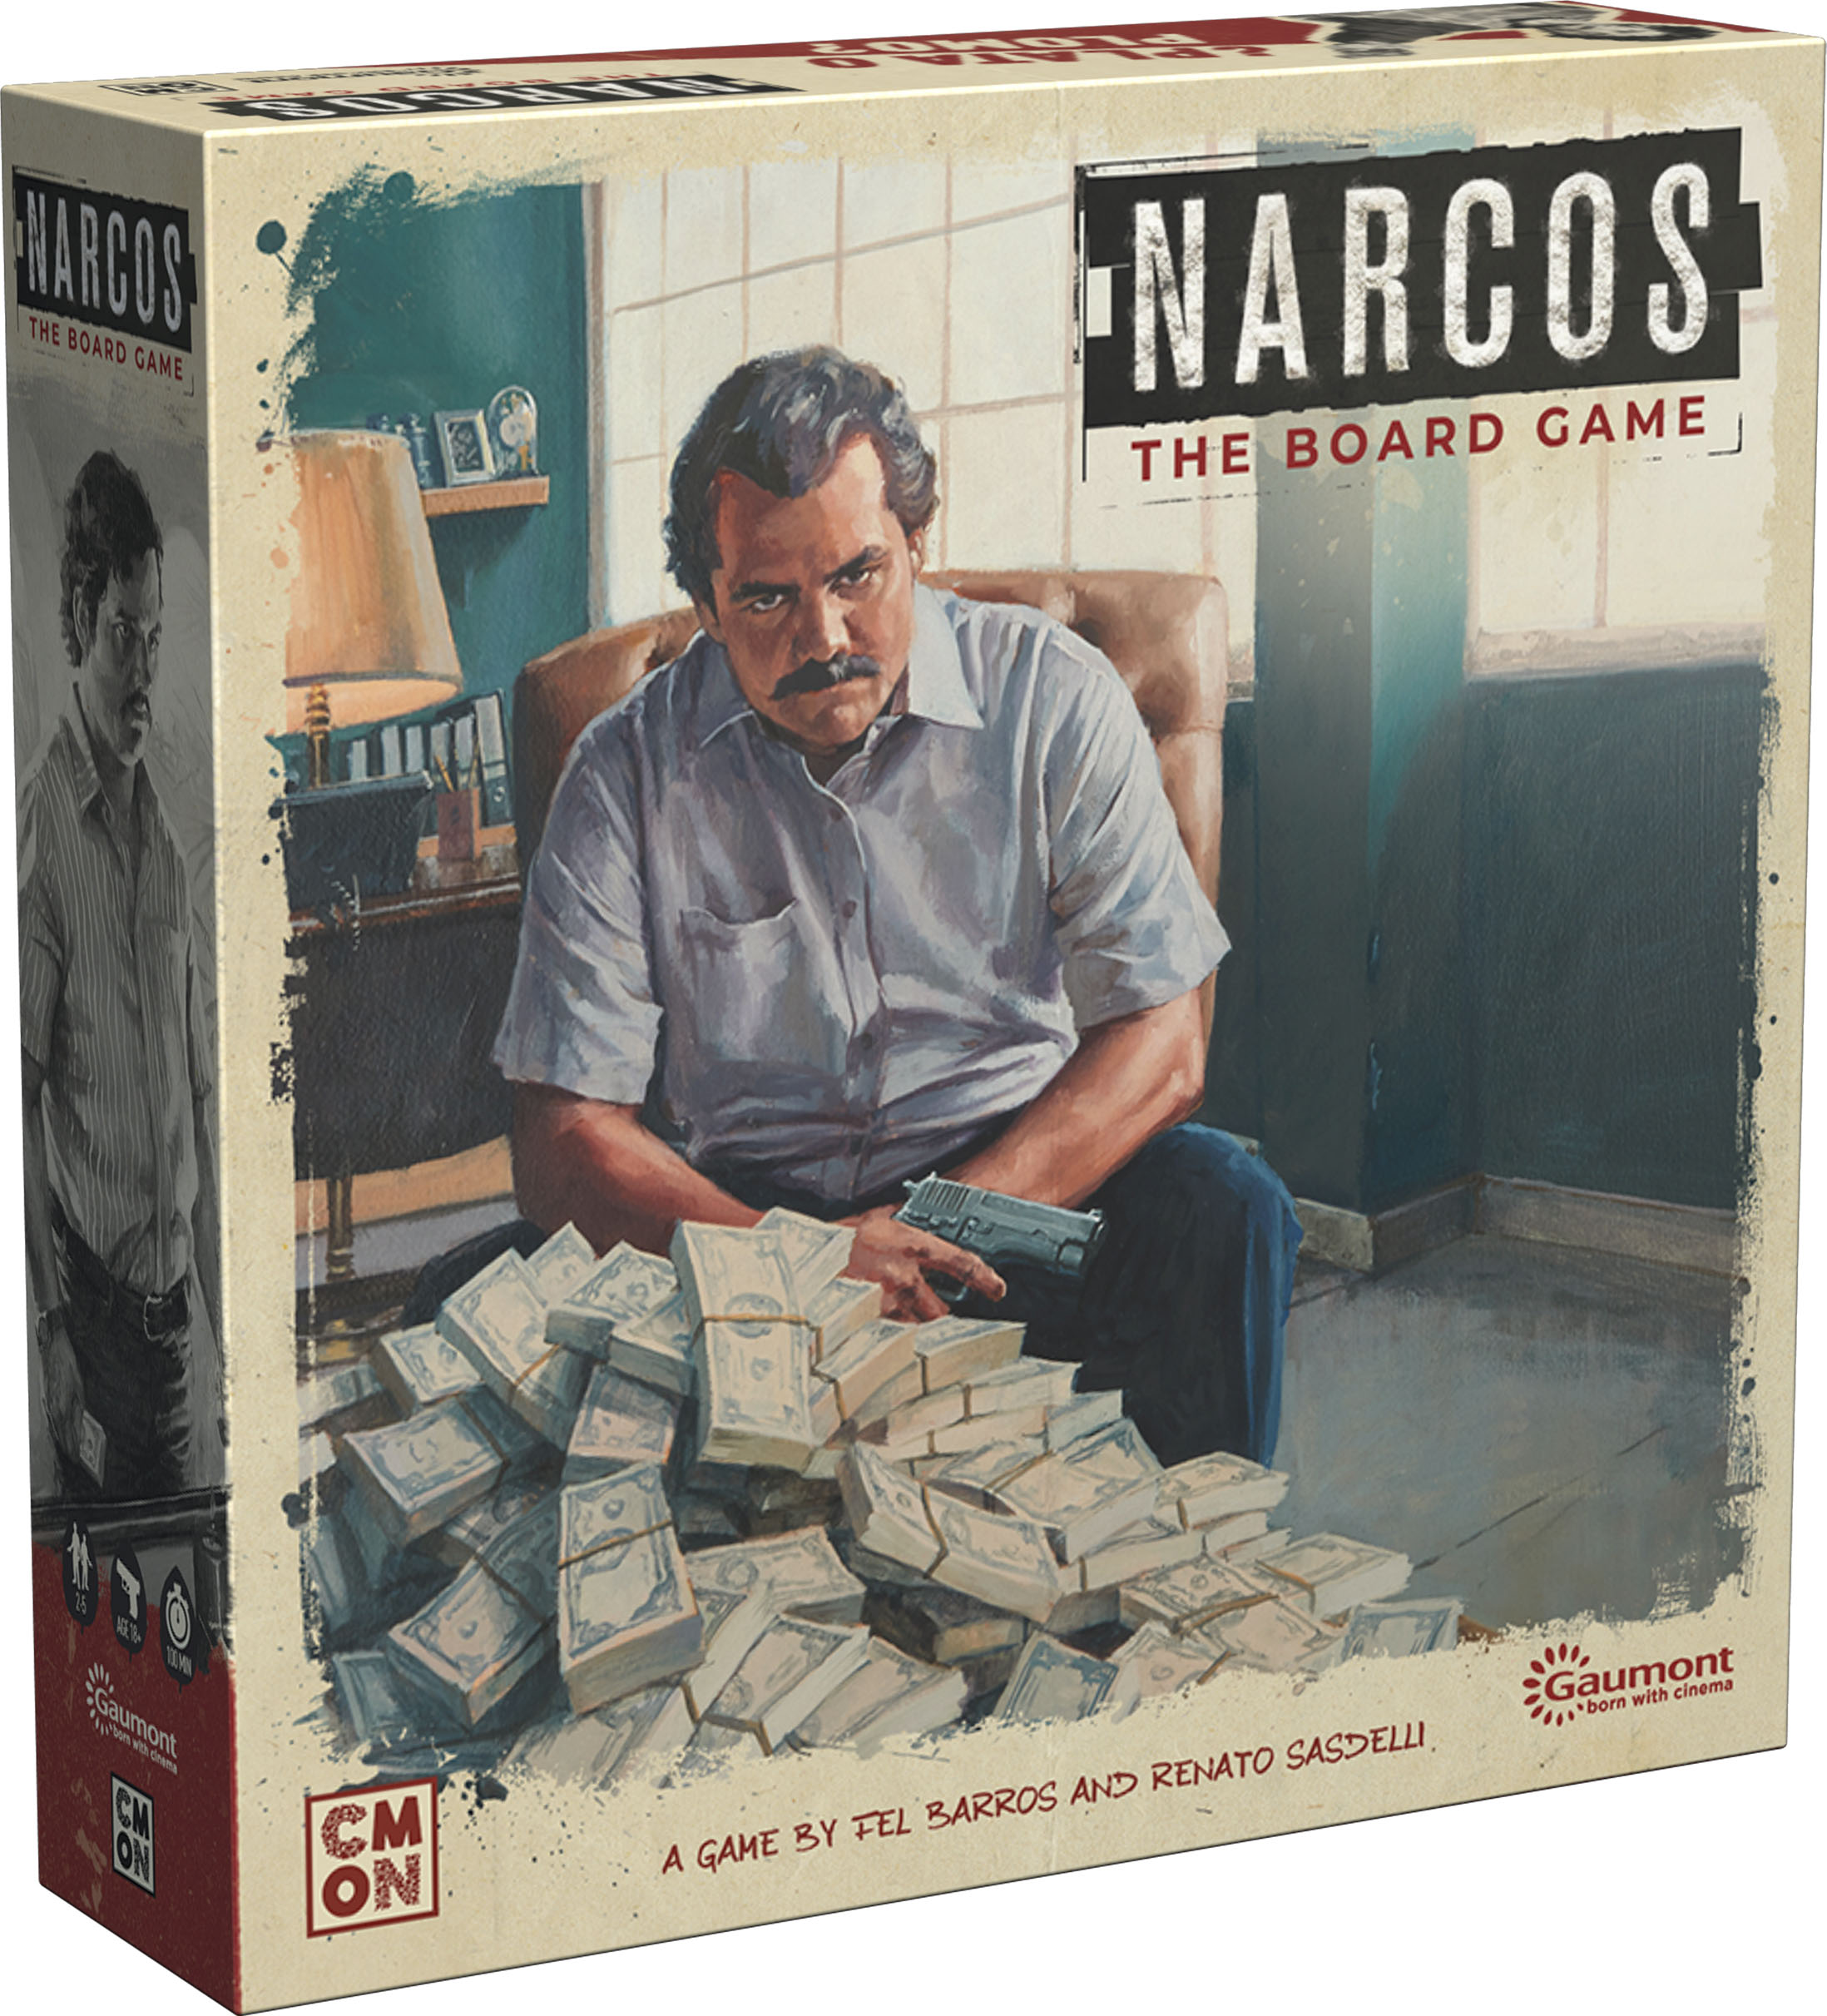 GTM #224 - Narcos: The Board Game - The Hunt for El Patrón